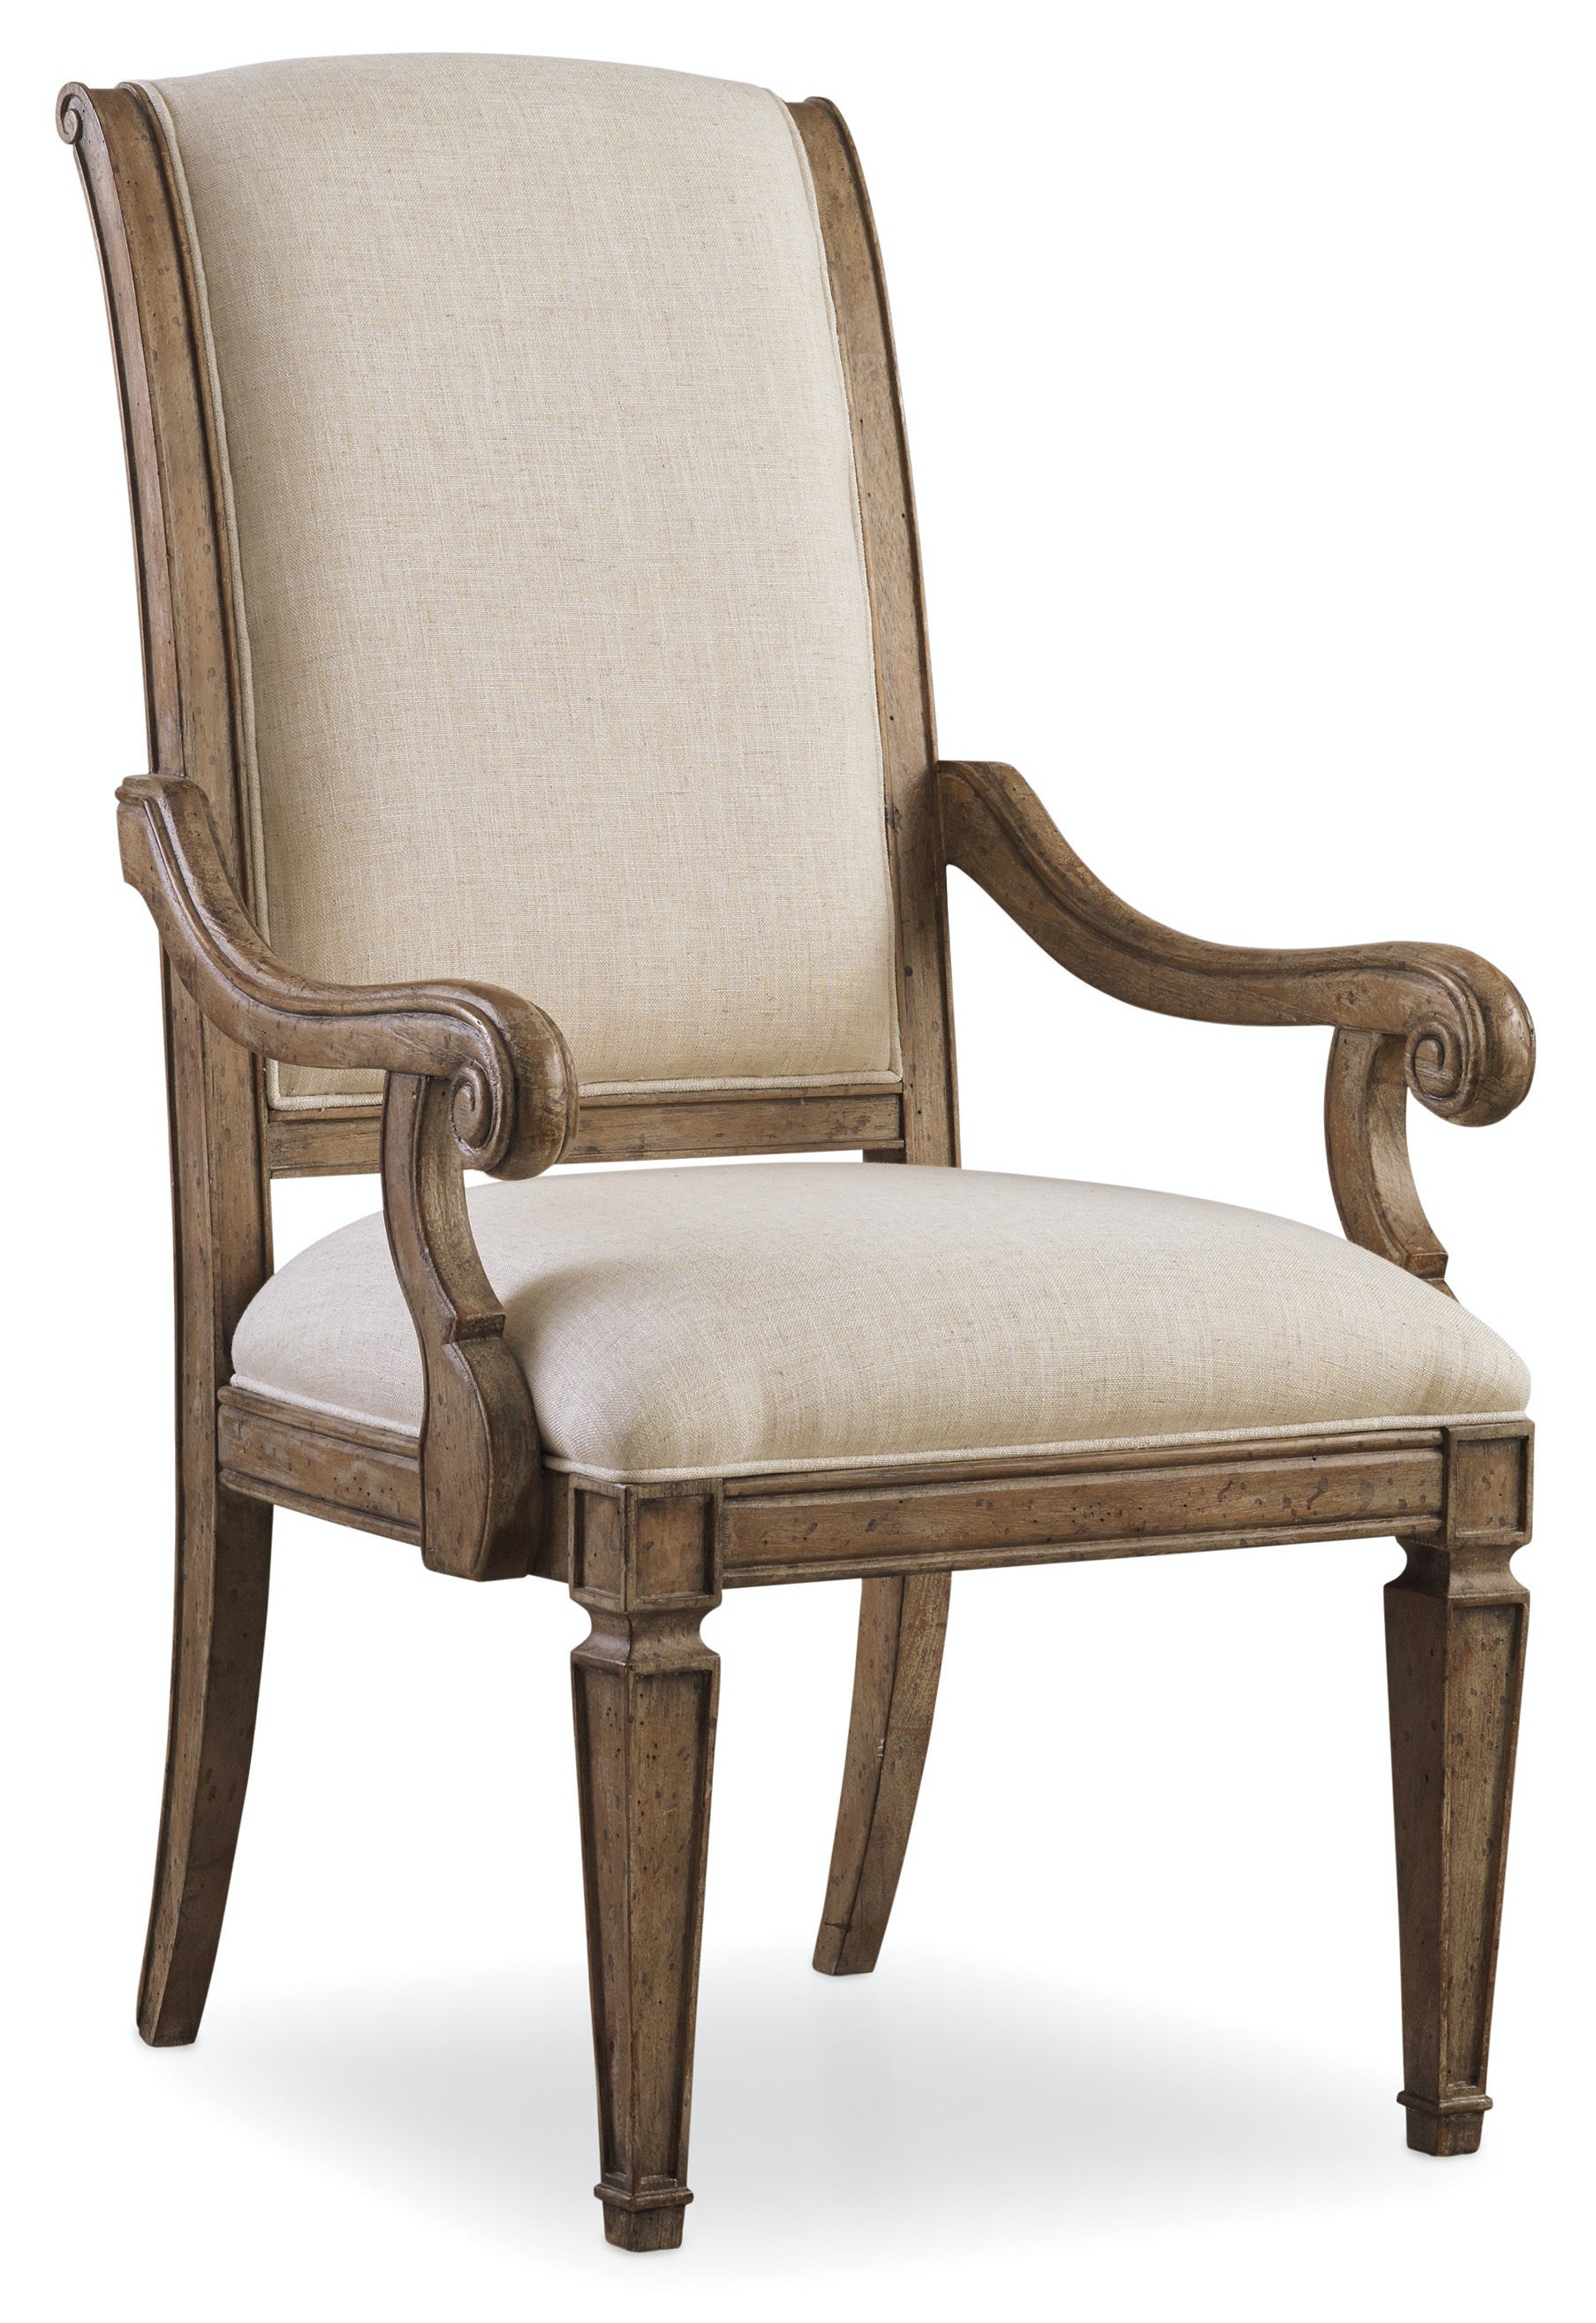 Hooker Furniture Dining Room Solana Upholstered Arm Chair  : 5291 75500 from www.hookerfurniture.com size 768 x 576 jpeg 19kB